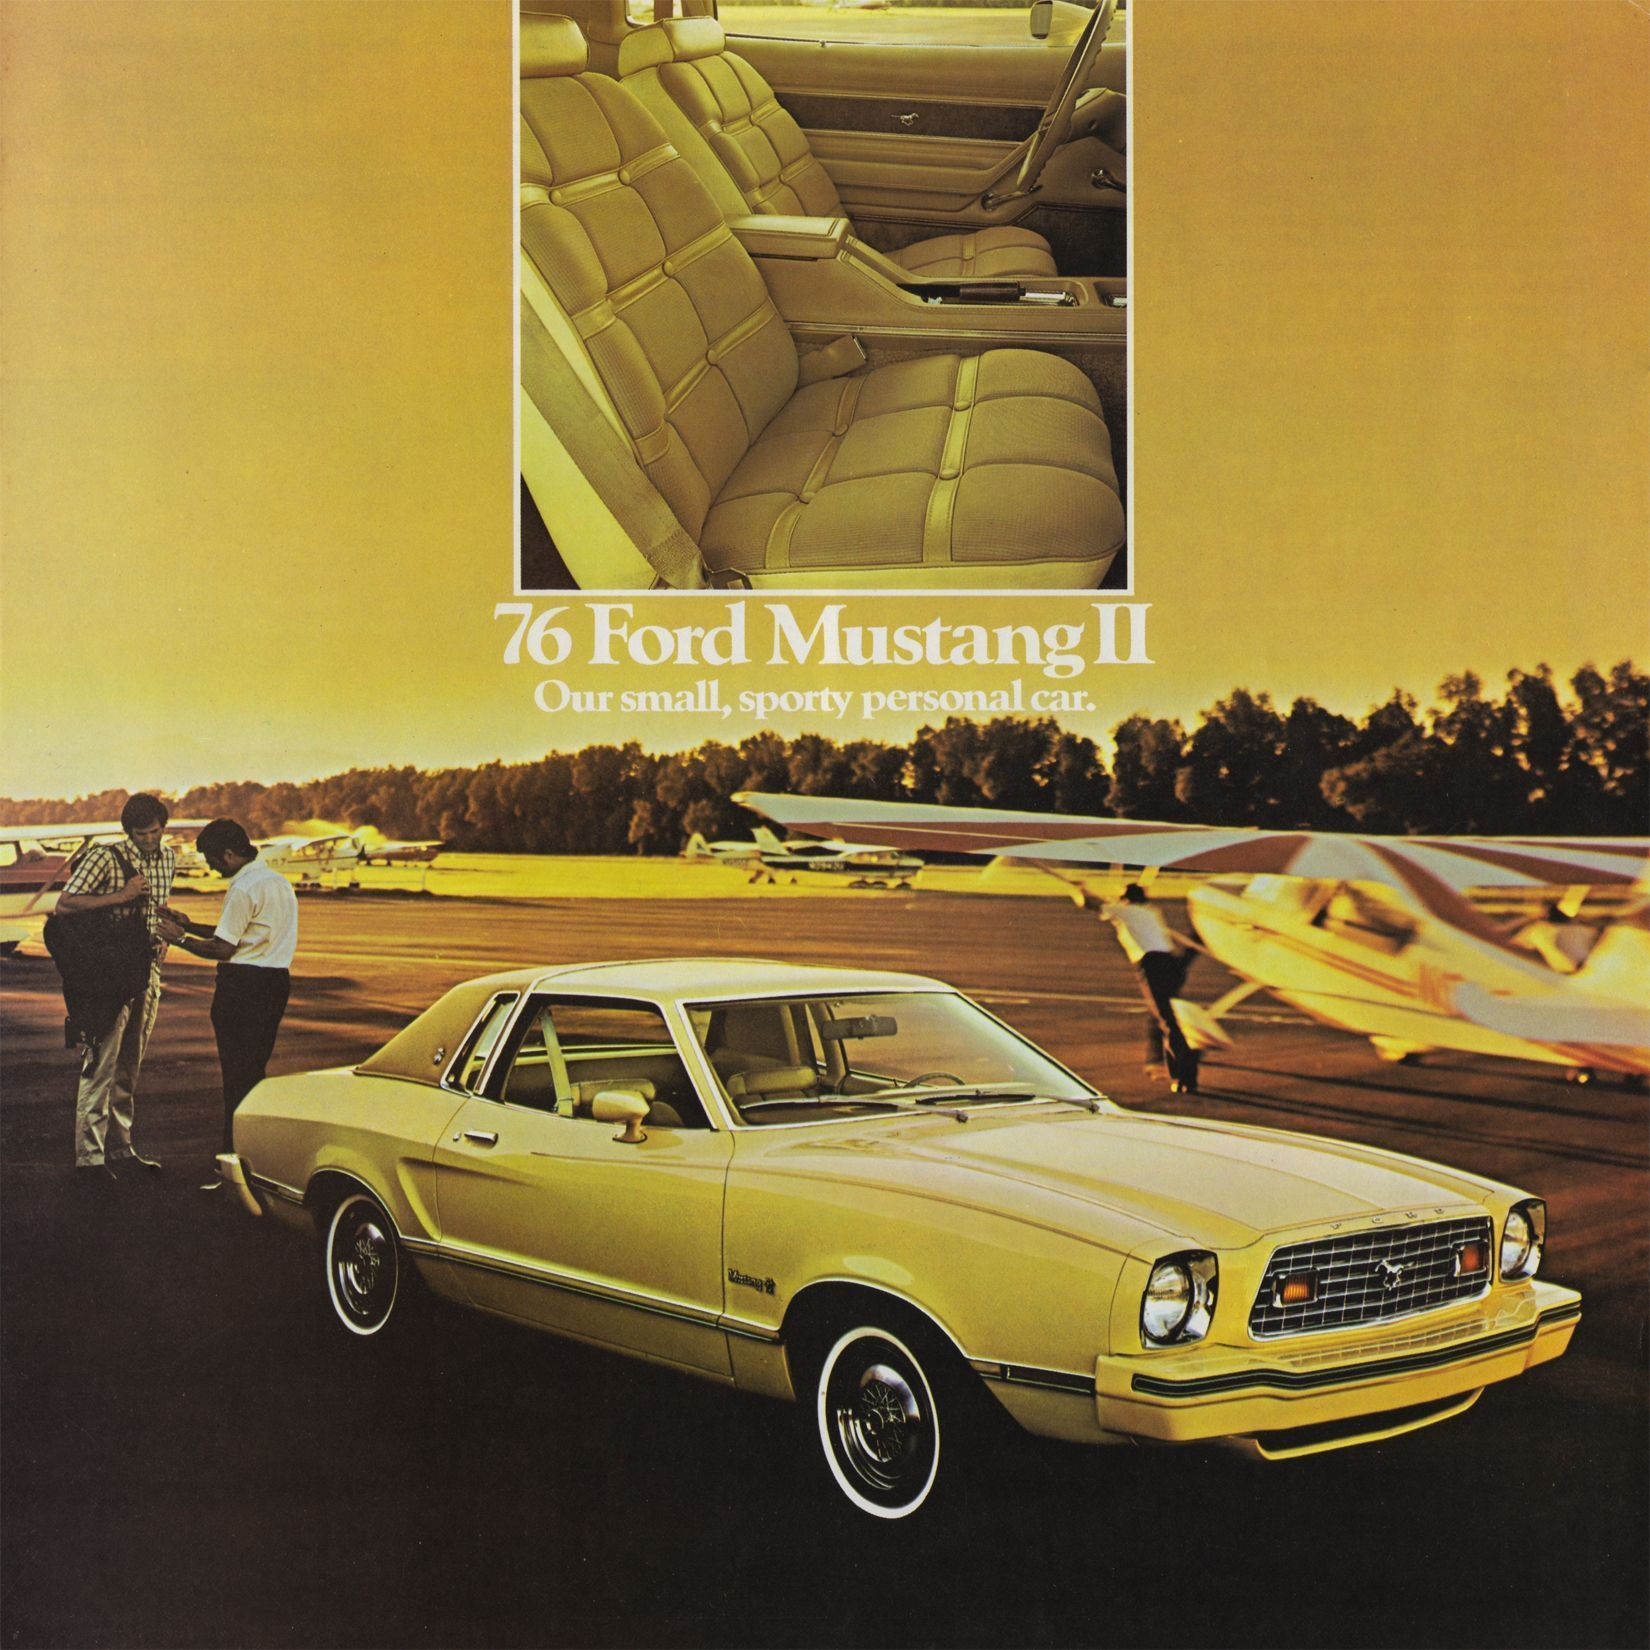 1976 Ford Mustang II sales literature | Art - Automobile ...